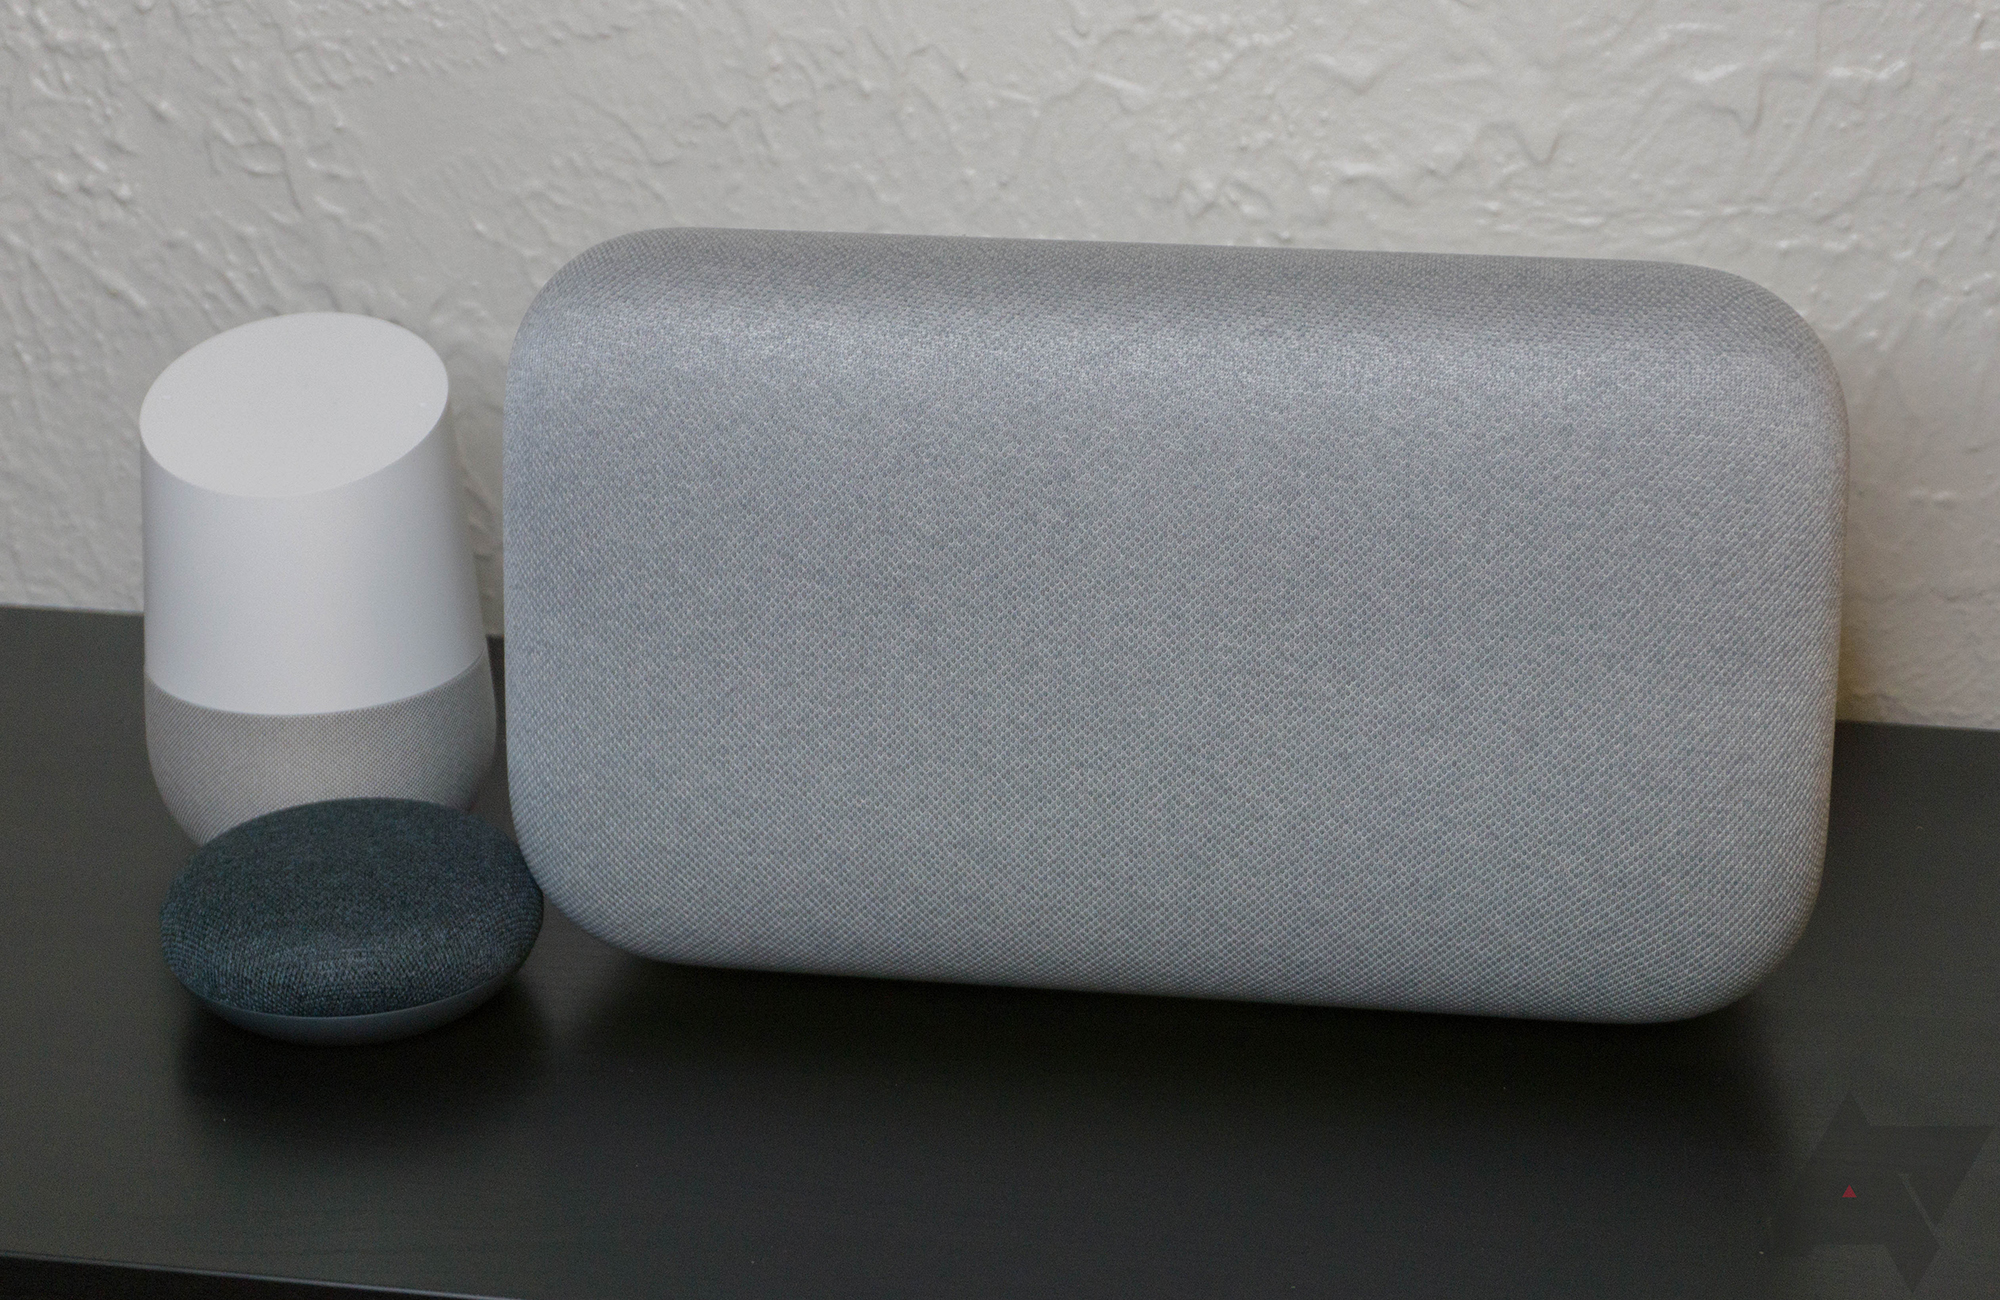 Google discontinues Home Max speaker, tells you to buy two Nest Audios instead